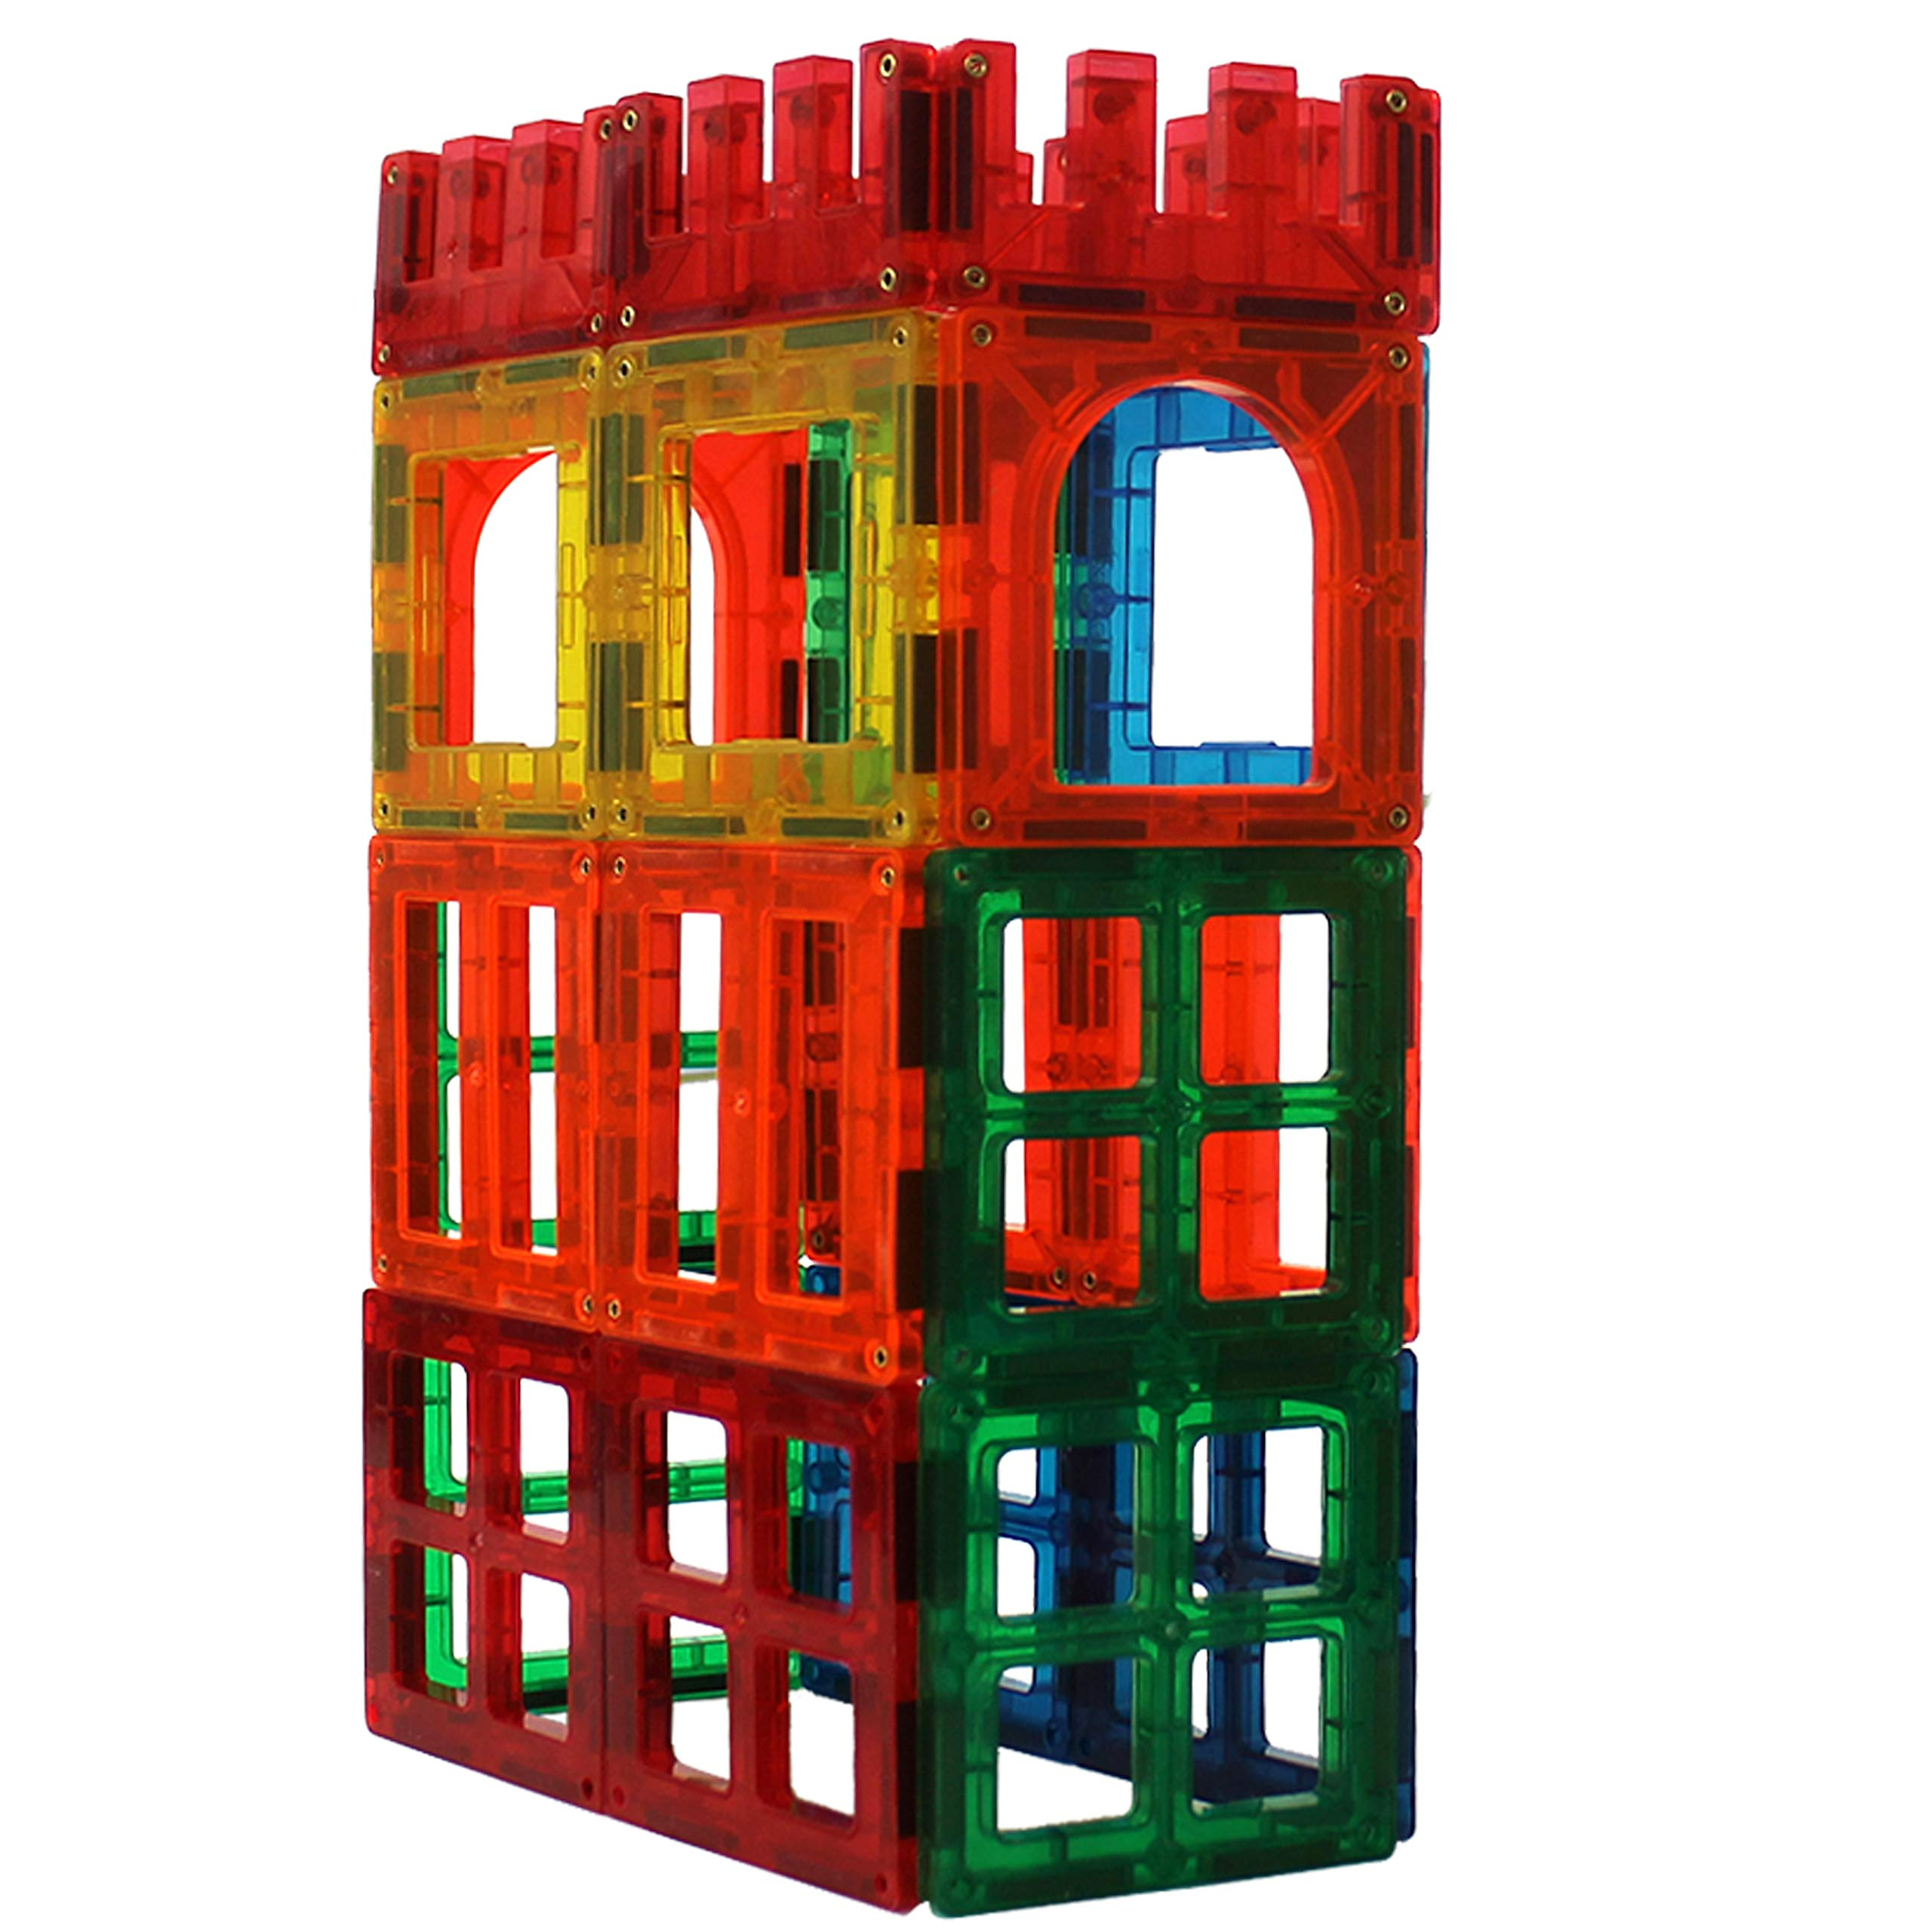 Magnetic Stick N Stack Award Winning 24 Piece Window, Fences and Doors Set. Made with Power+Magnets by Magnetic Stick N Stack